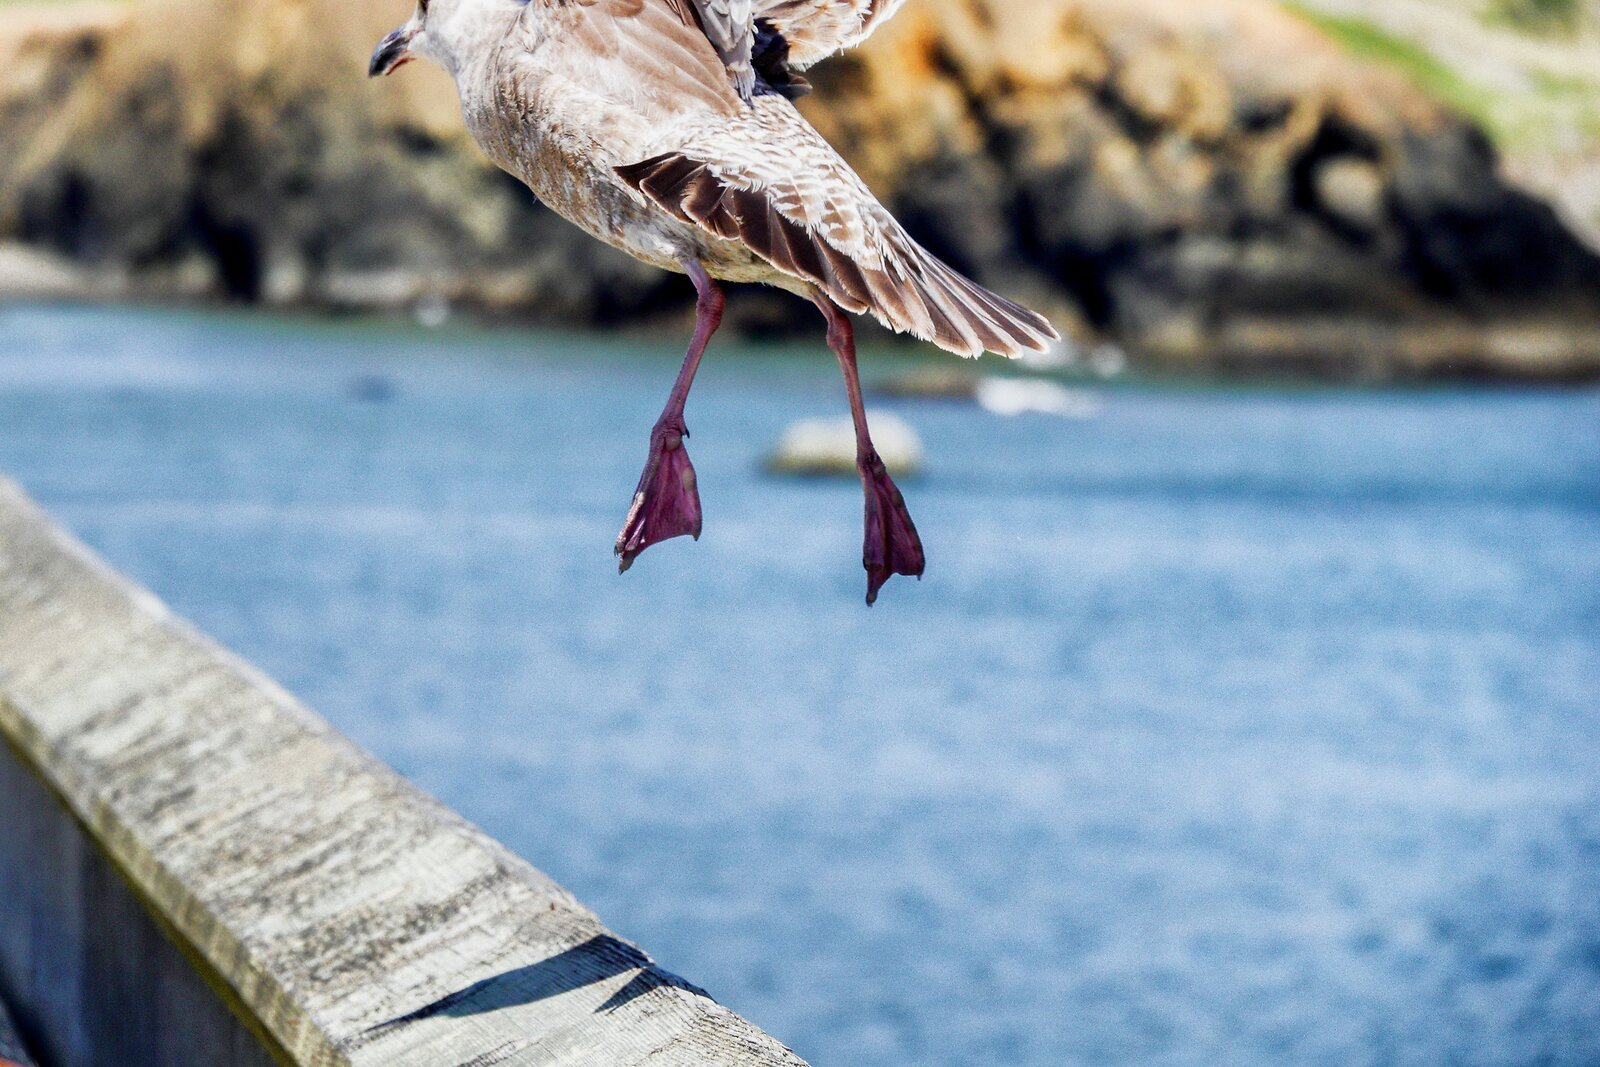 RX10_May18_21_Seagull_flying.jpg